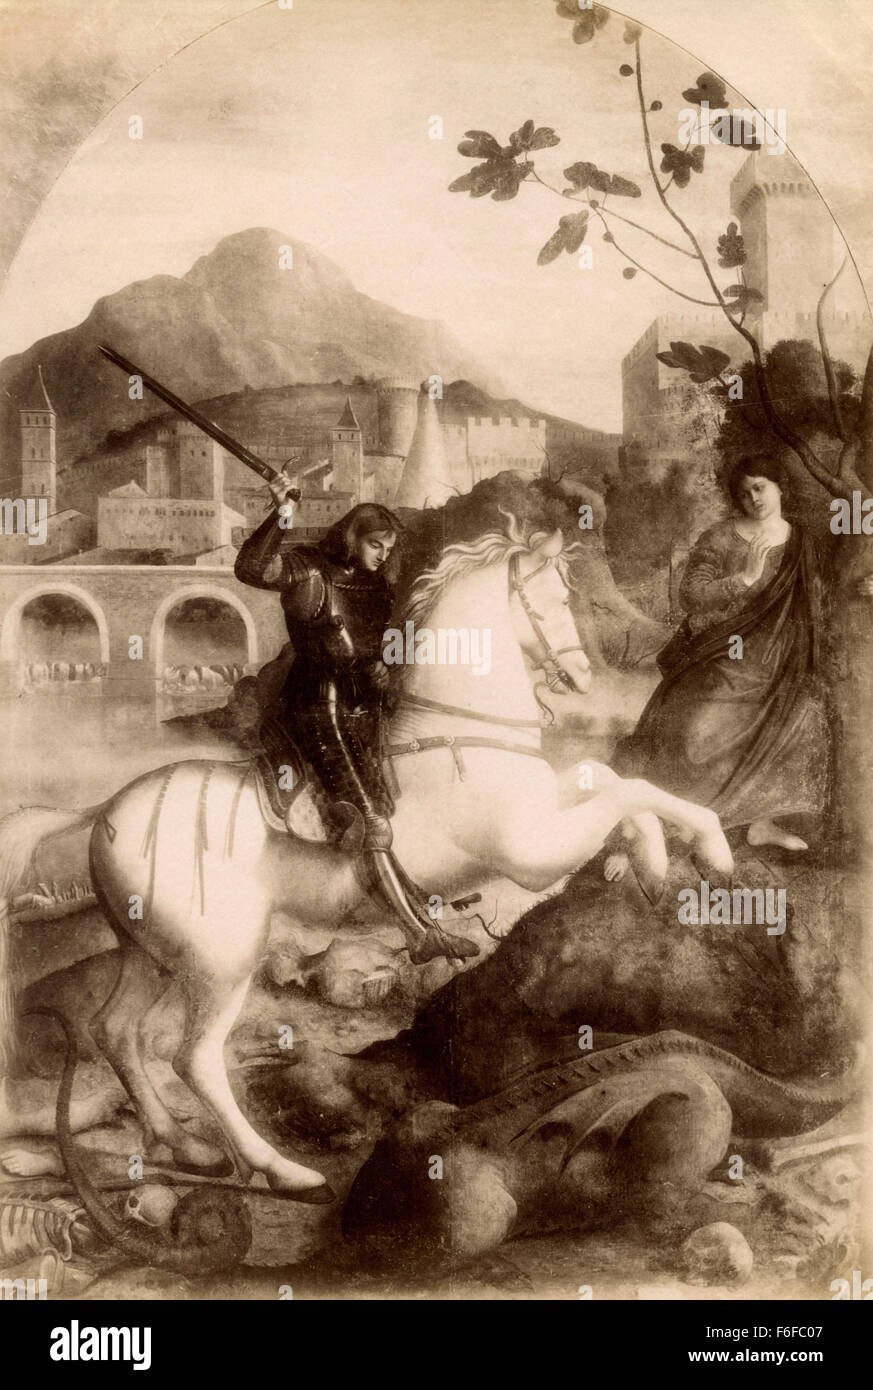 St. George slaying the dragon, painting by Basaiti - Stock Image